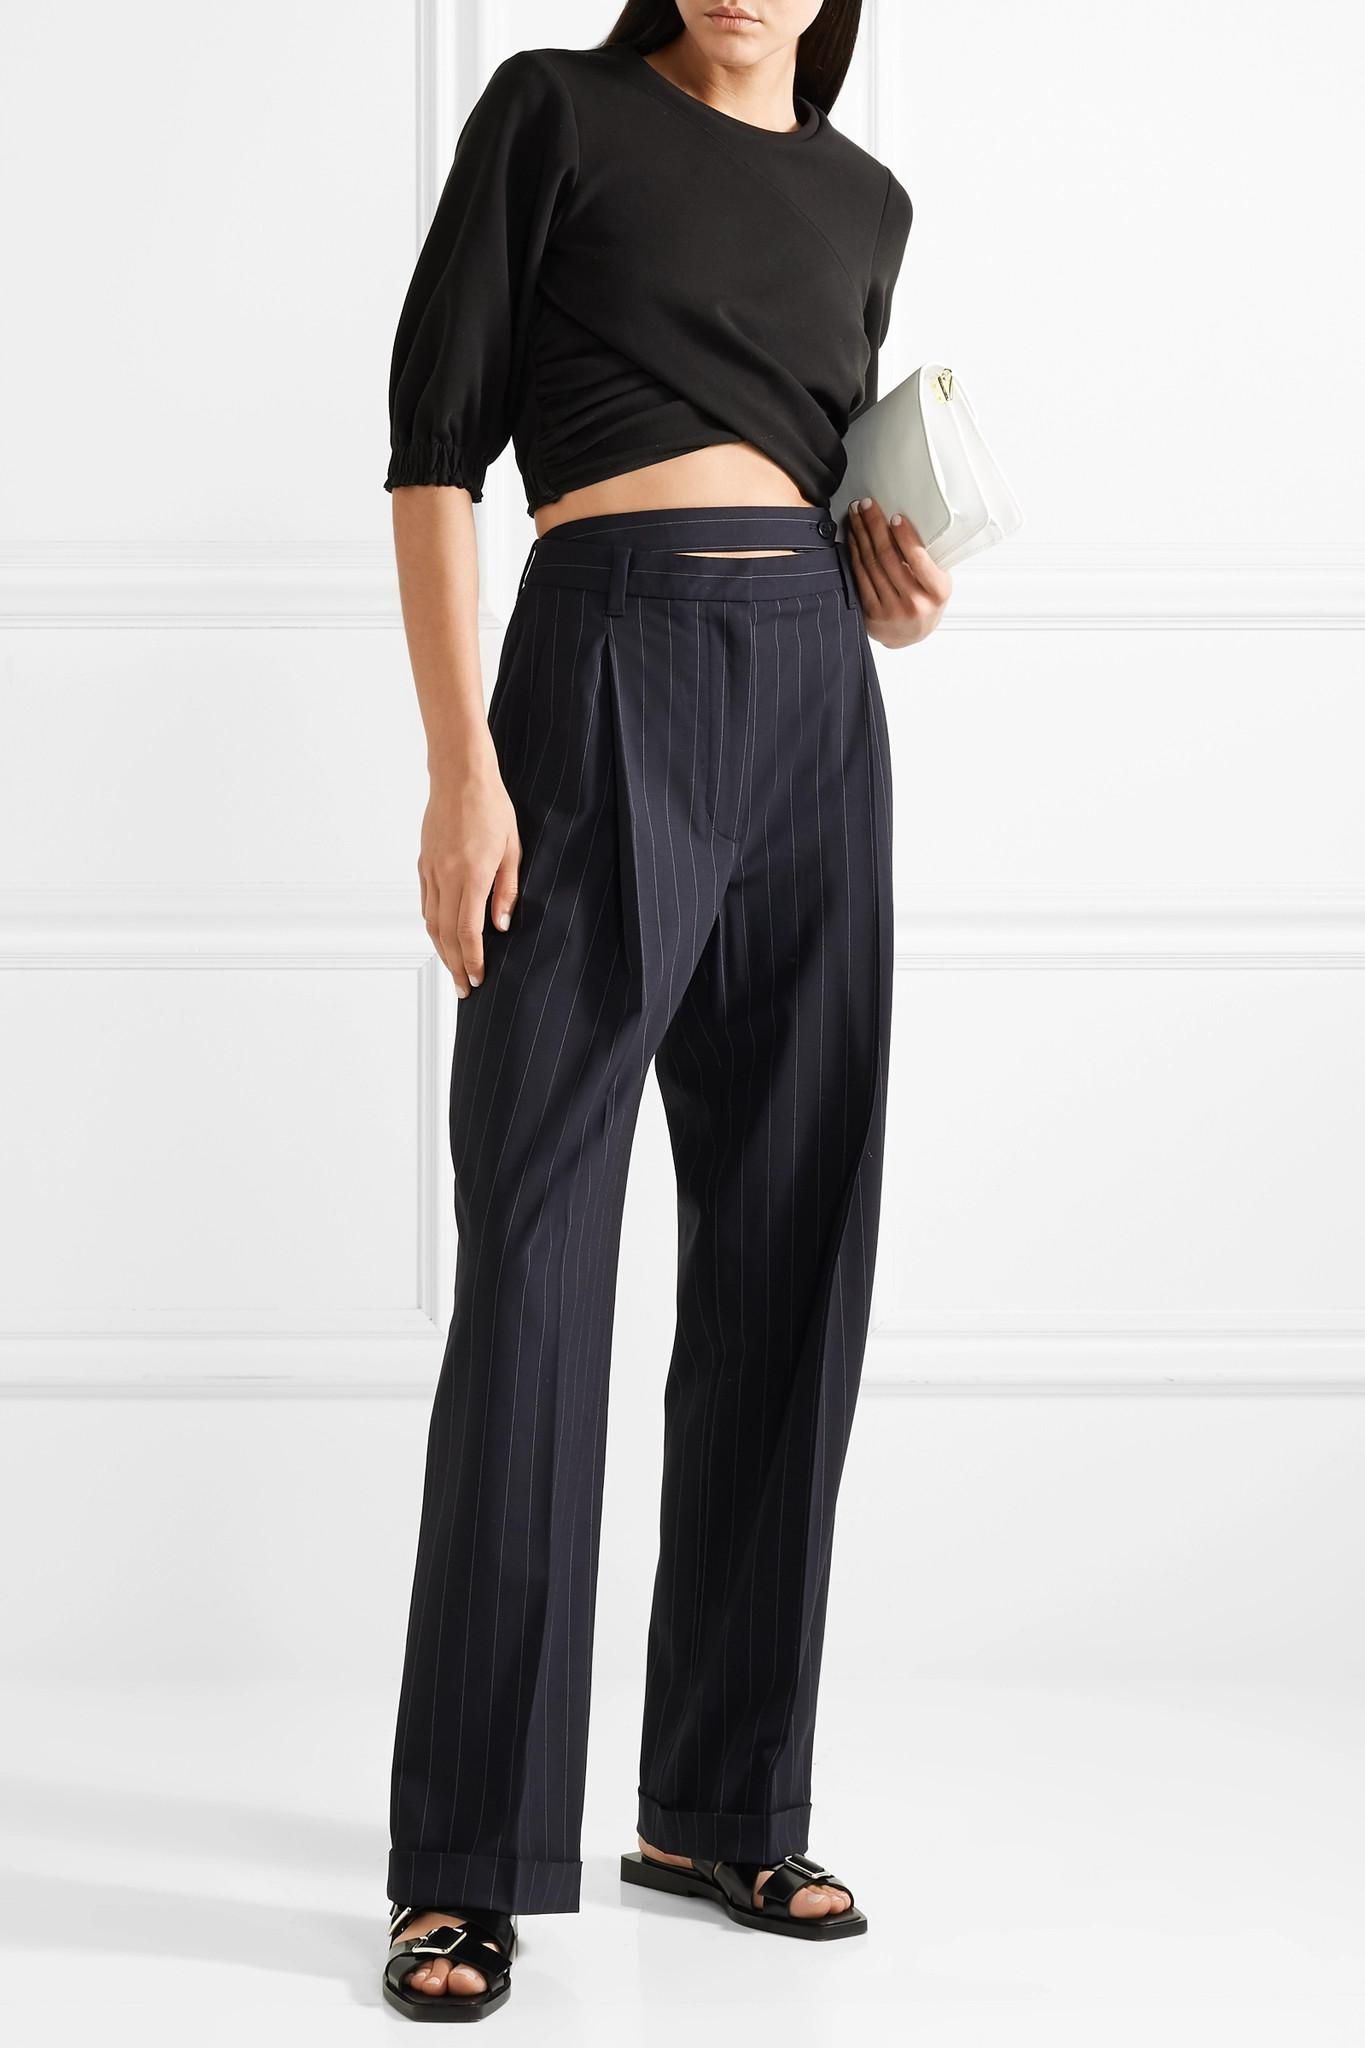 Belted Cutout Pinstriped Wool-blend Pants - Midnight blue 3.1 Phillip Lim sFpovAn